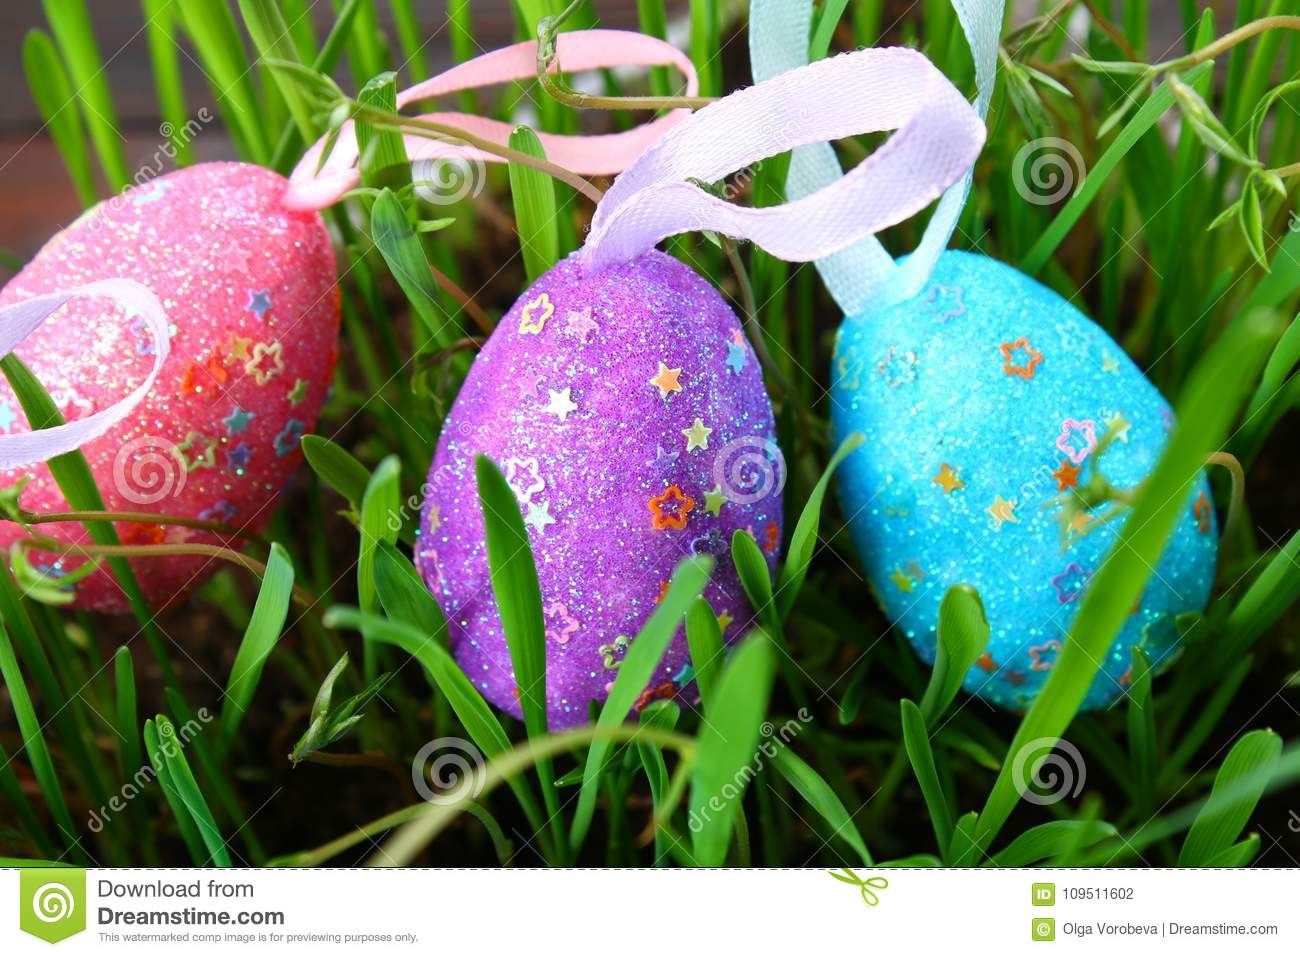 Blue decorative eggs on a background of green grass. Easter.